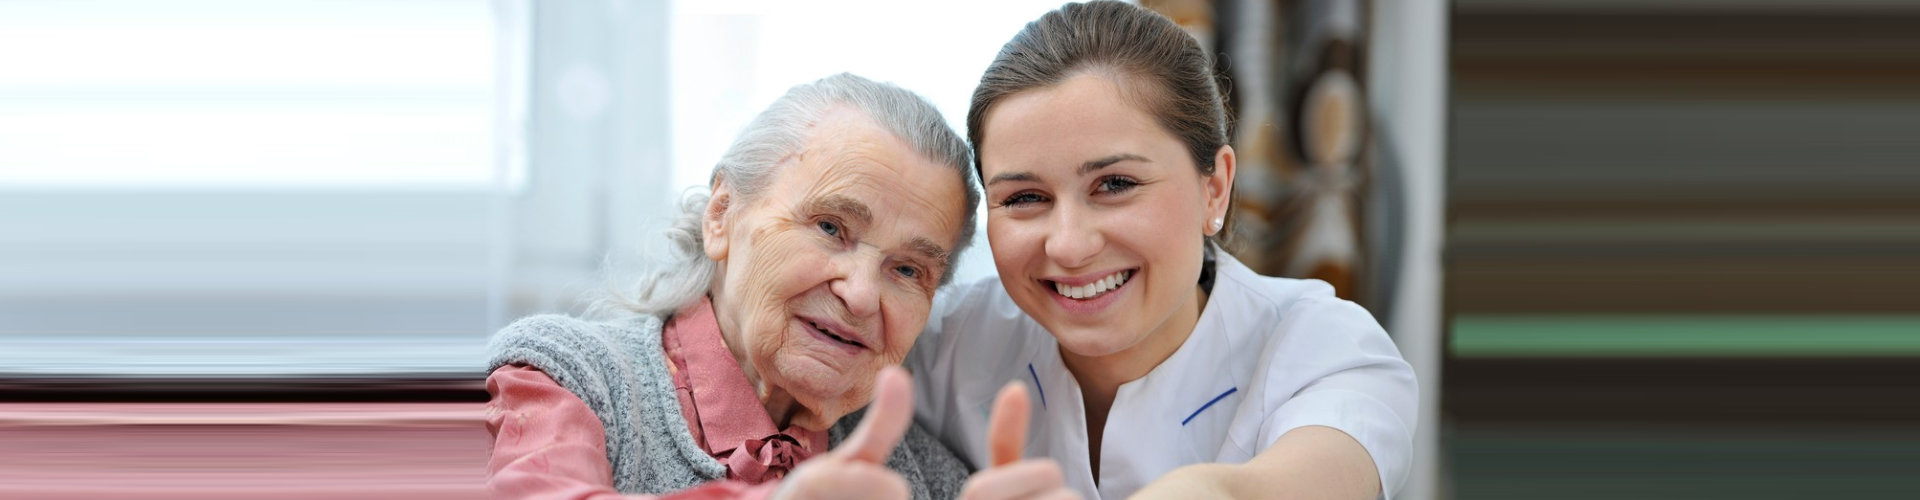 female caregiver and her old woman patient doing thumbs up